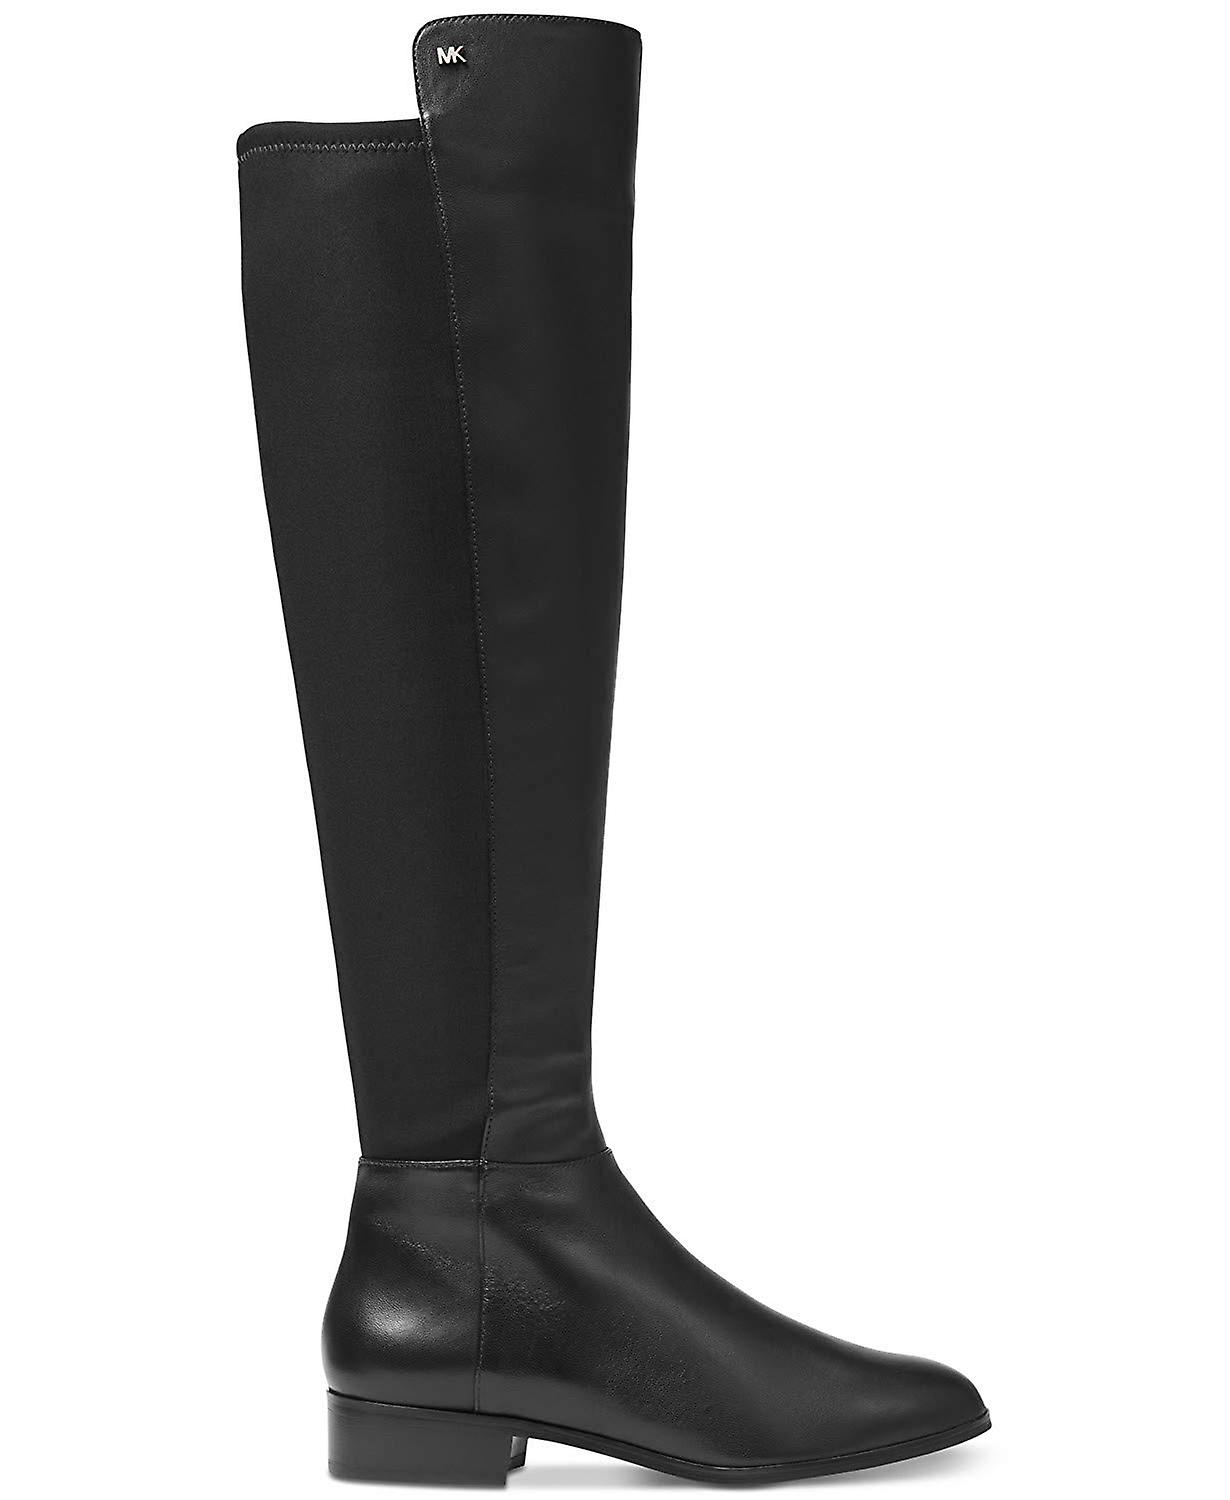 Michael Kors Womens Bromley Leather Almond Toe Knee High Riding Boots